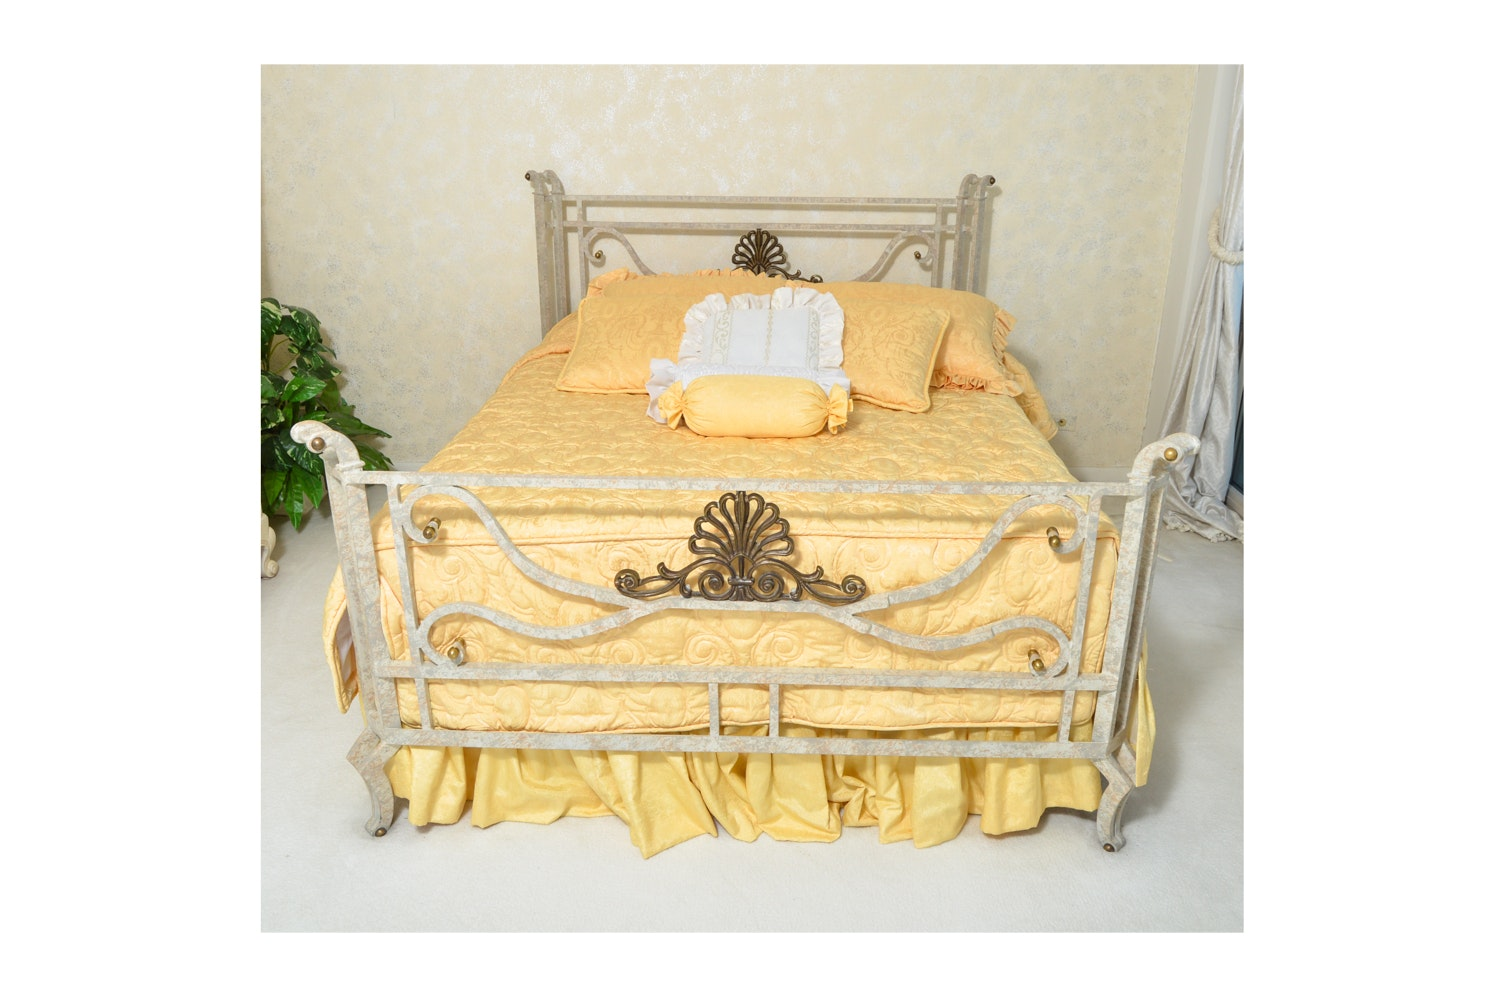 Contemporary Queen Size Metal Bed Frame with Bedding